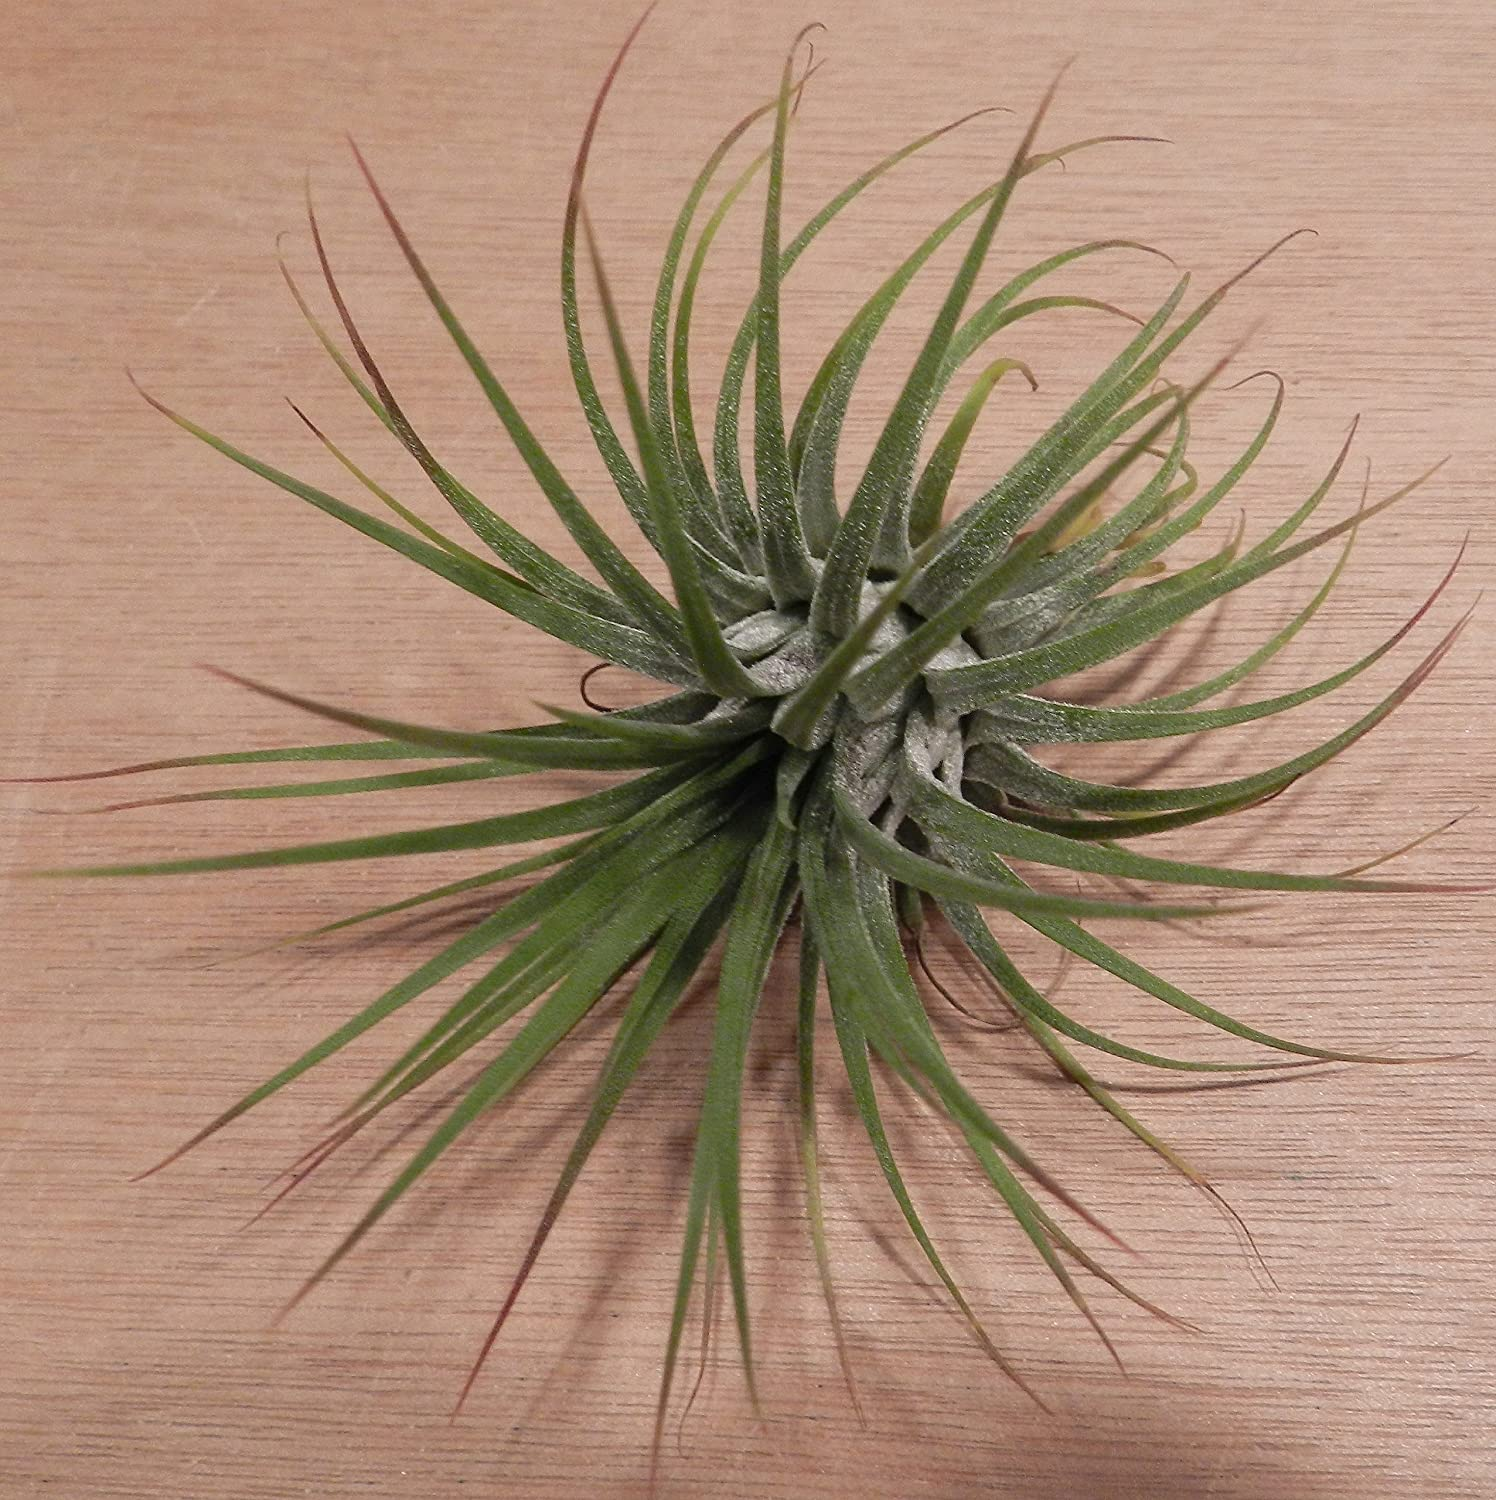 Amazon.com : Hinterland Trading Three Pack of Air Plant Tillandsia ...